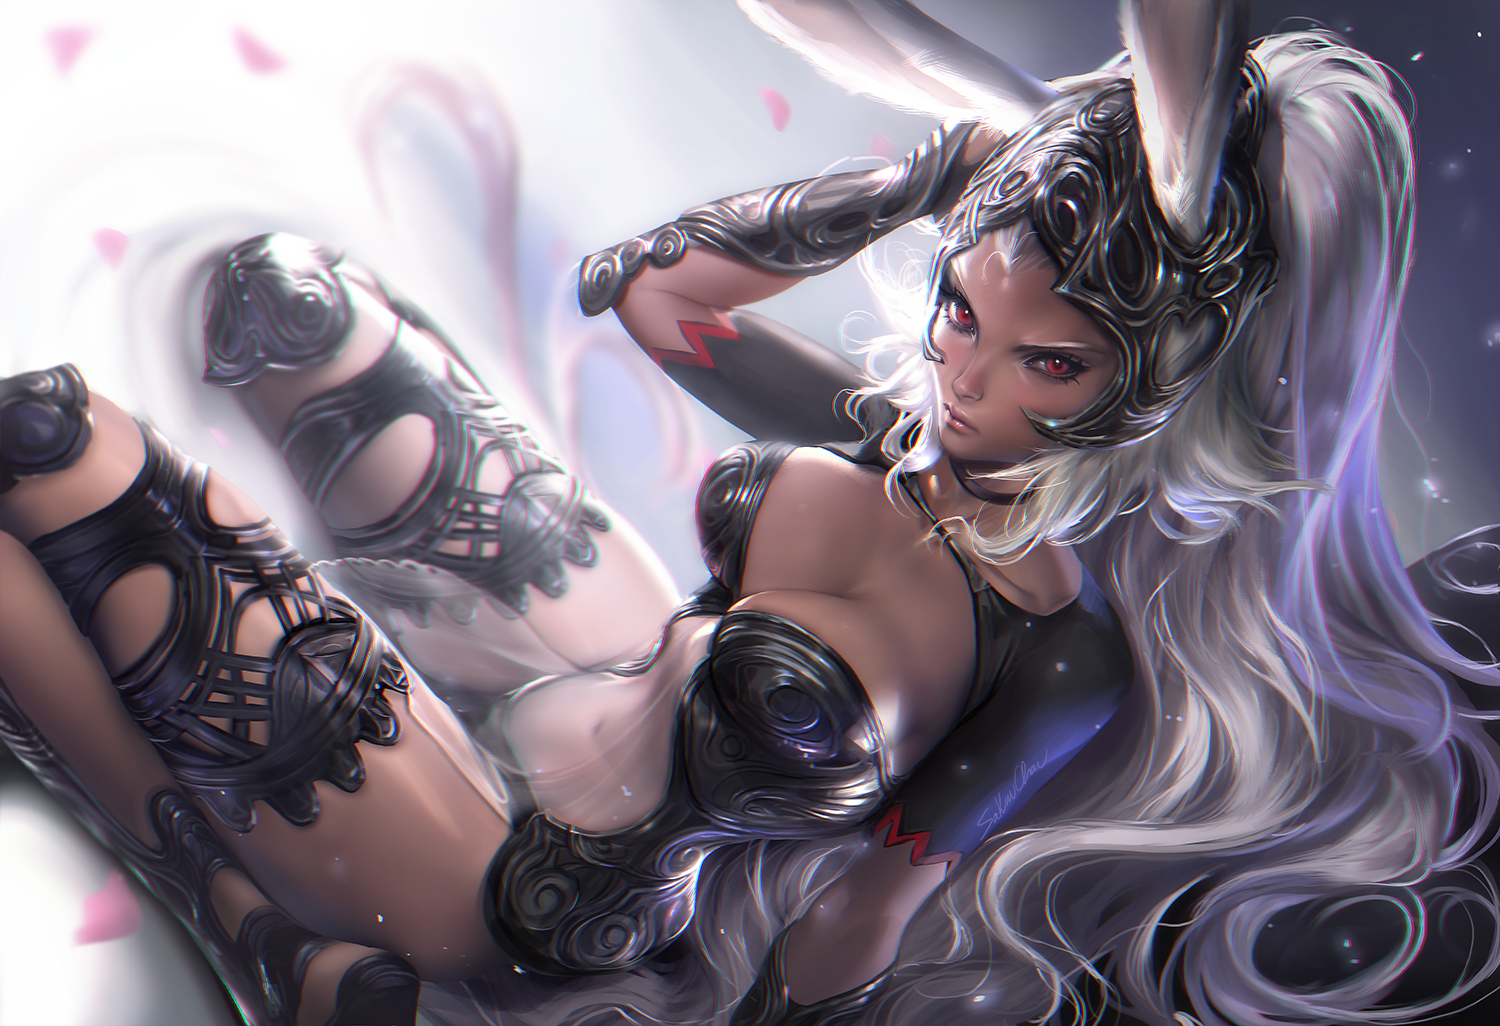 animal_ears armor breasts bunny_ears bunnygirl choker cleavage dark_skin final_fantasy final_fantasy_xii fran gray_hair headdress navel red_eyes sakimichan see_through